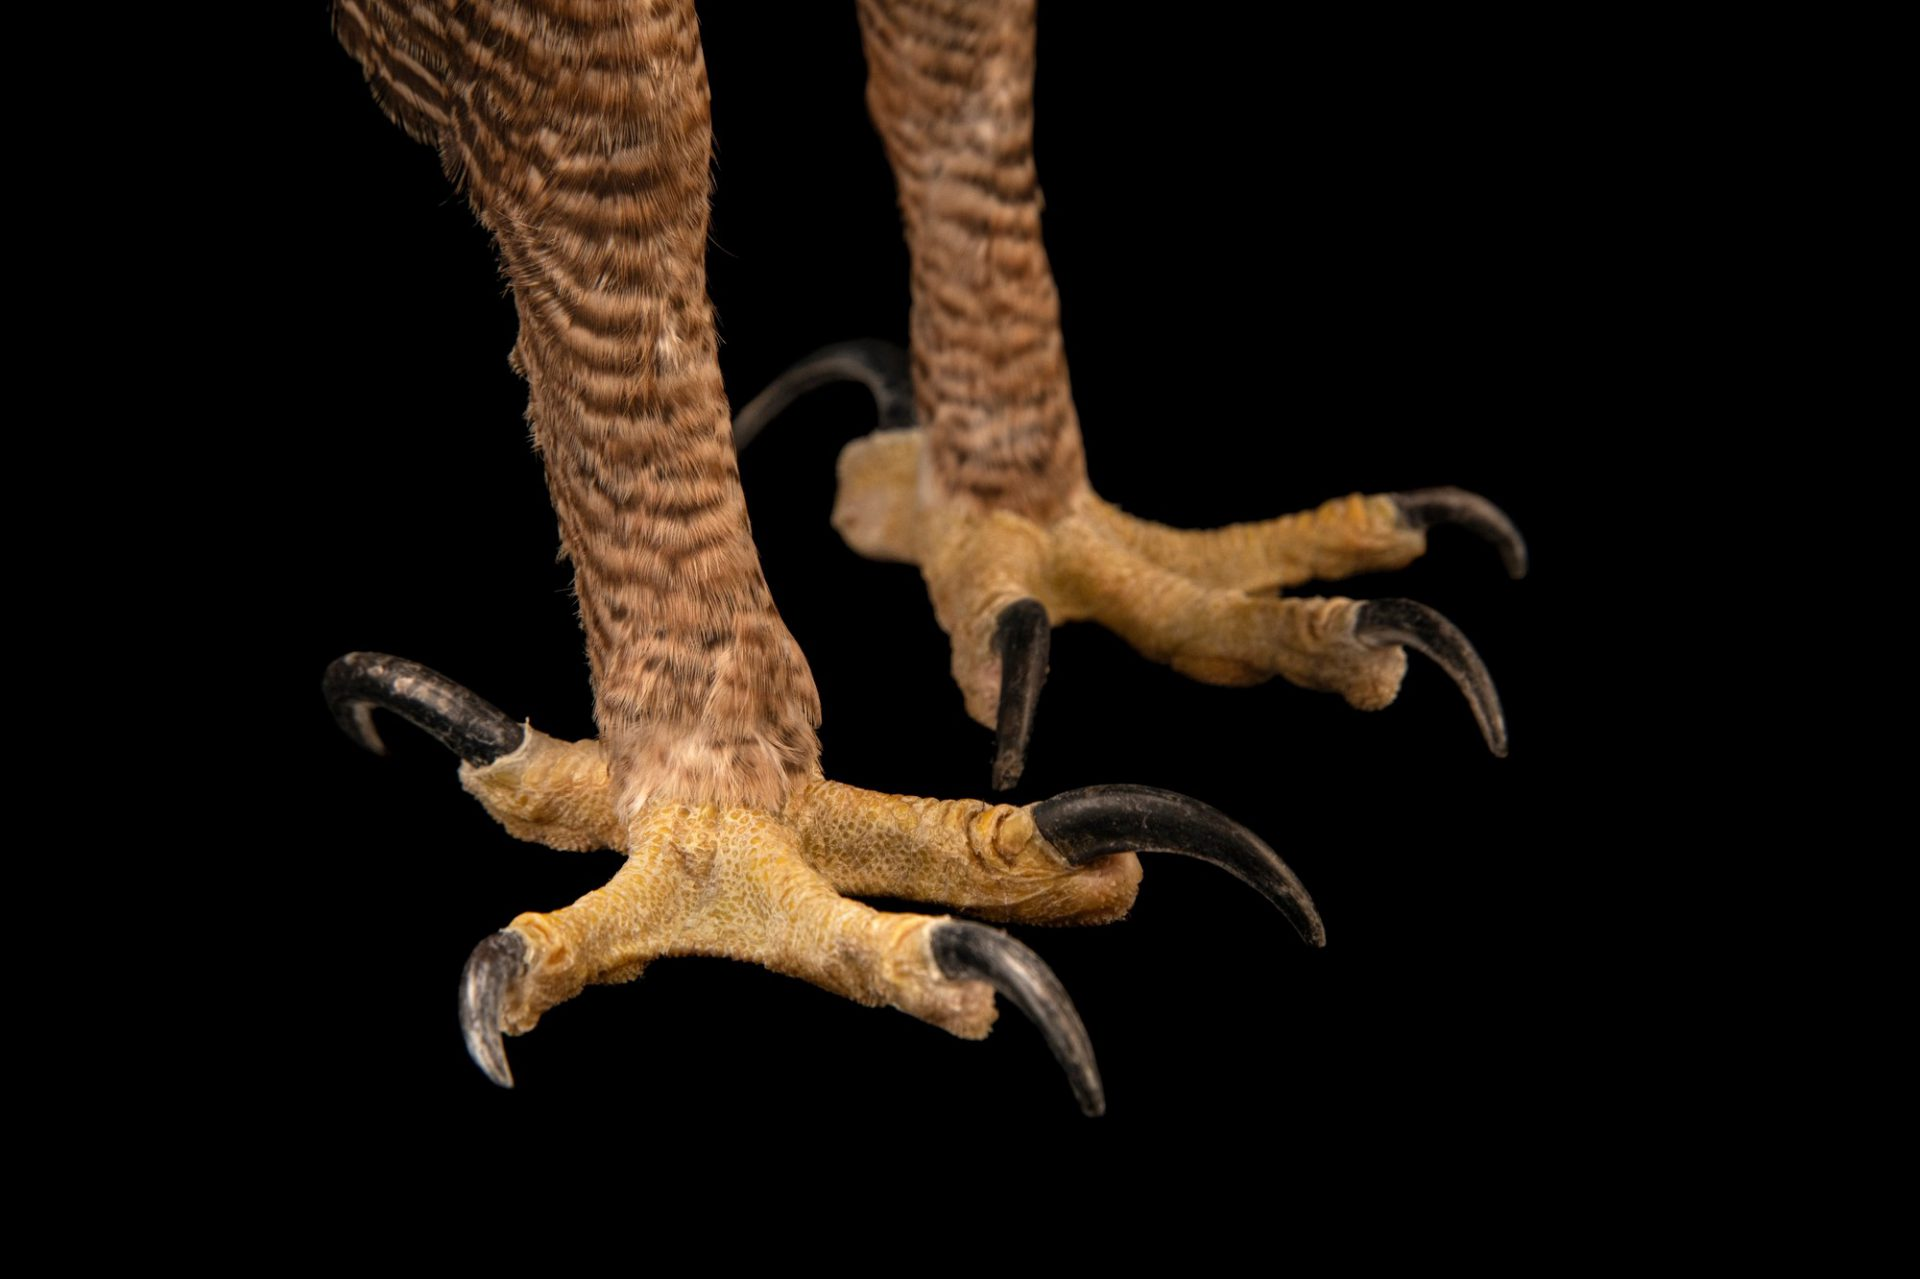 Photo: The talons of an endangered North Philippine hawk-eagle (Nisaetus philippensis) at the Avilon Zoo.